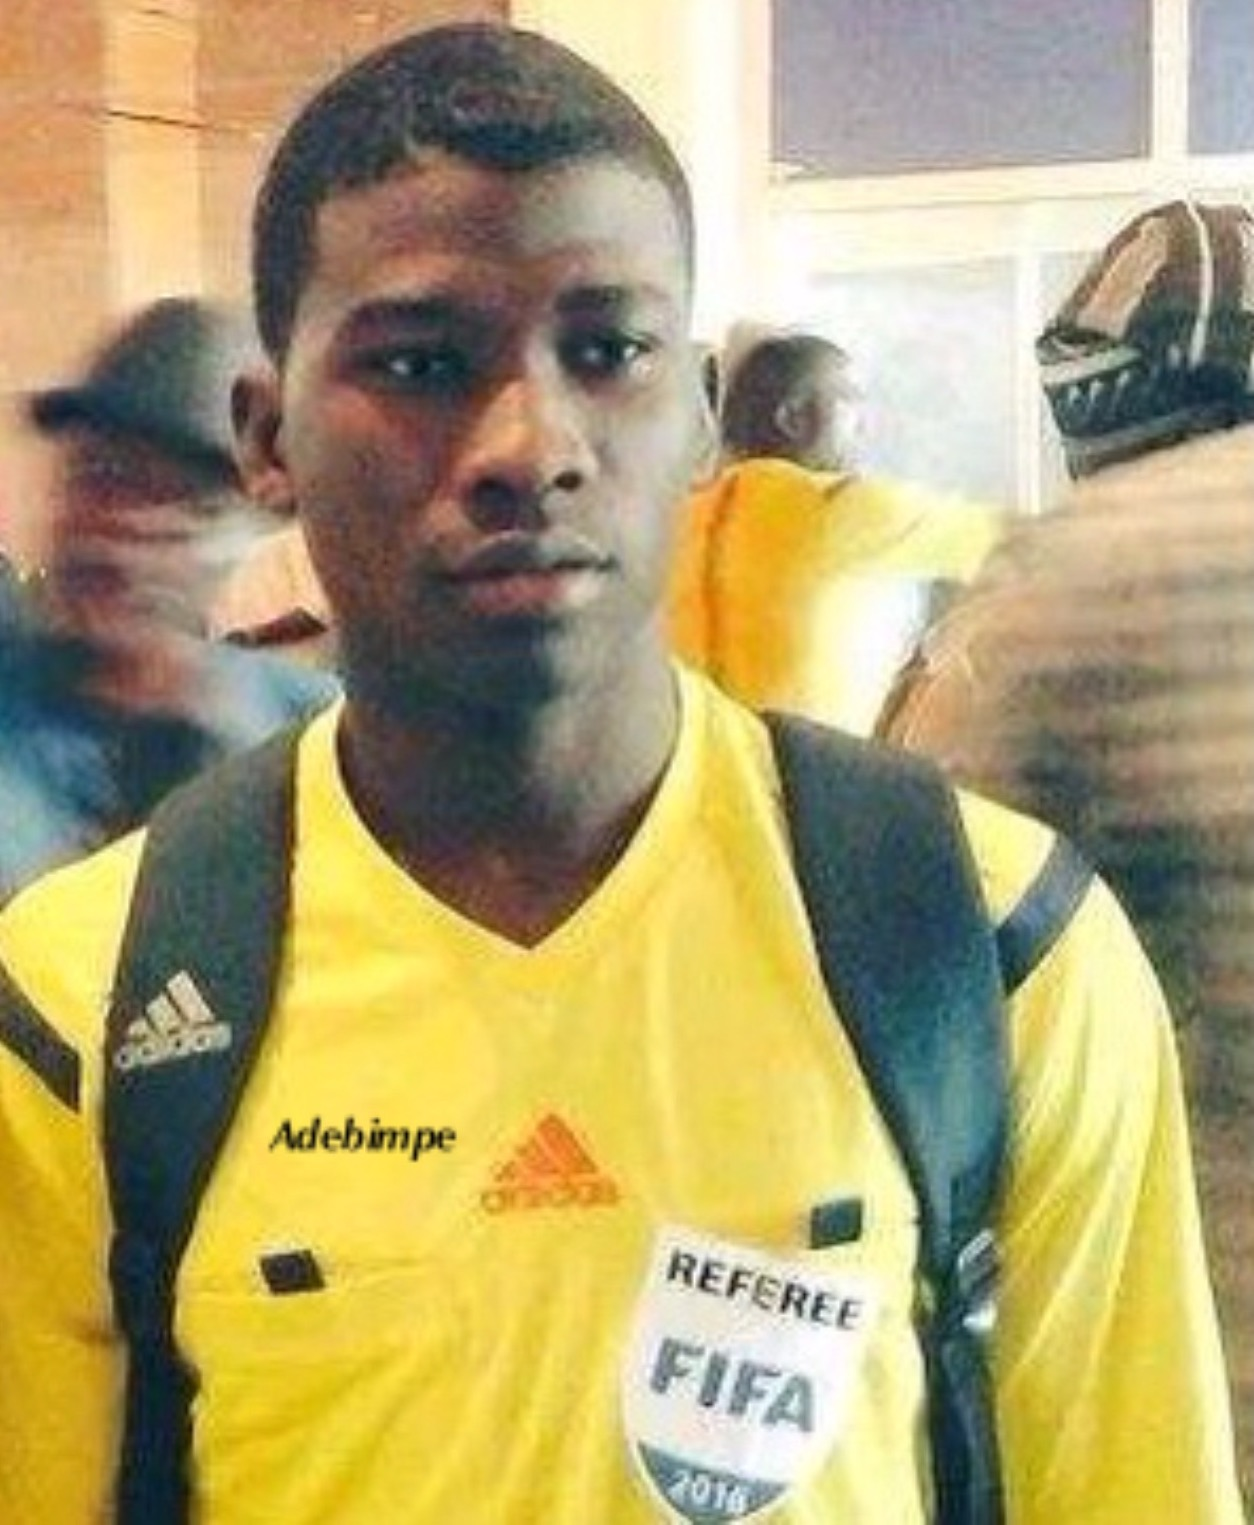 NIgeria's Youngest Referee, Adebimpe For CAFCL Duty; Shuaibu For CAFCC